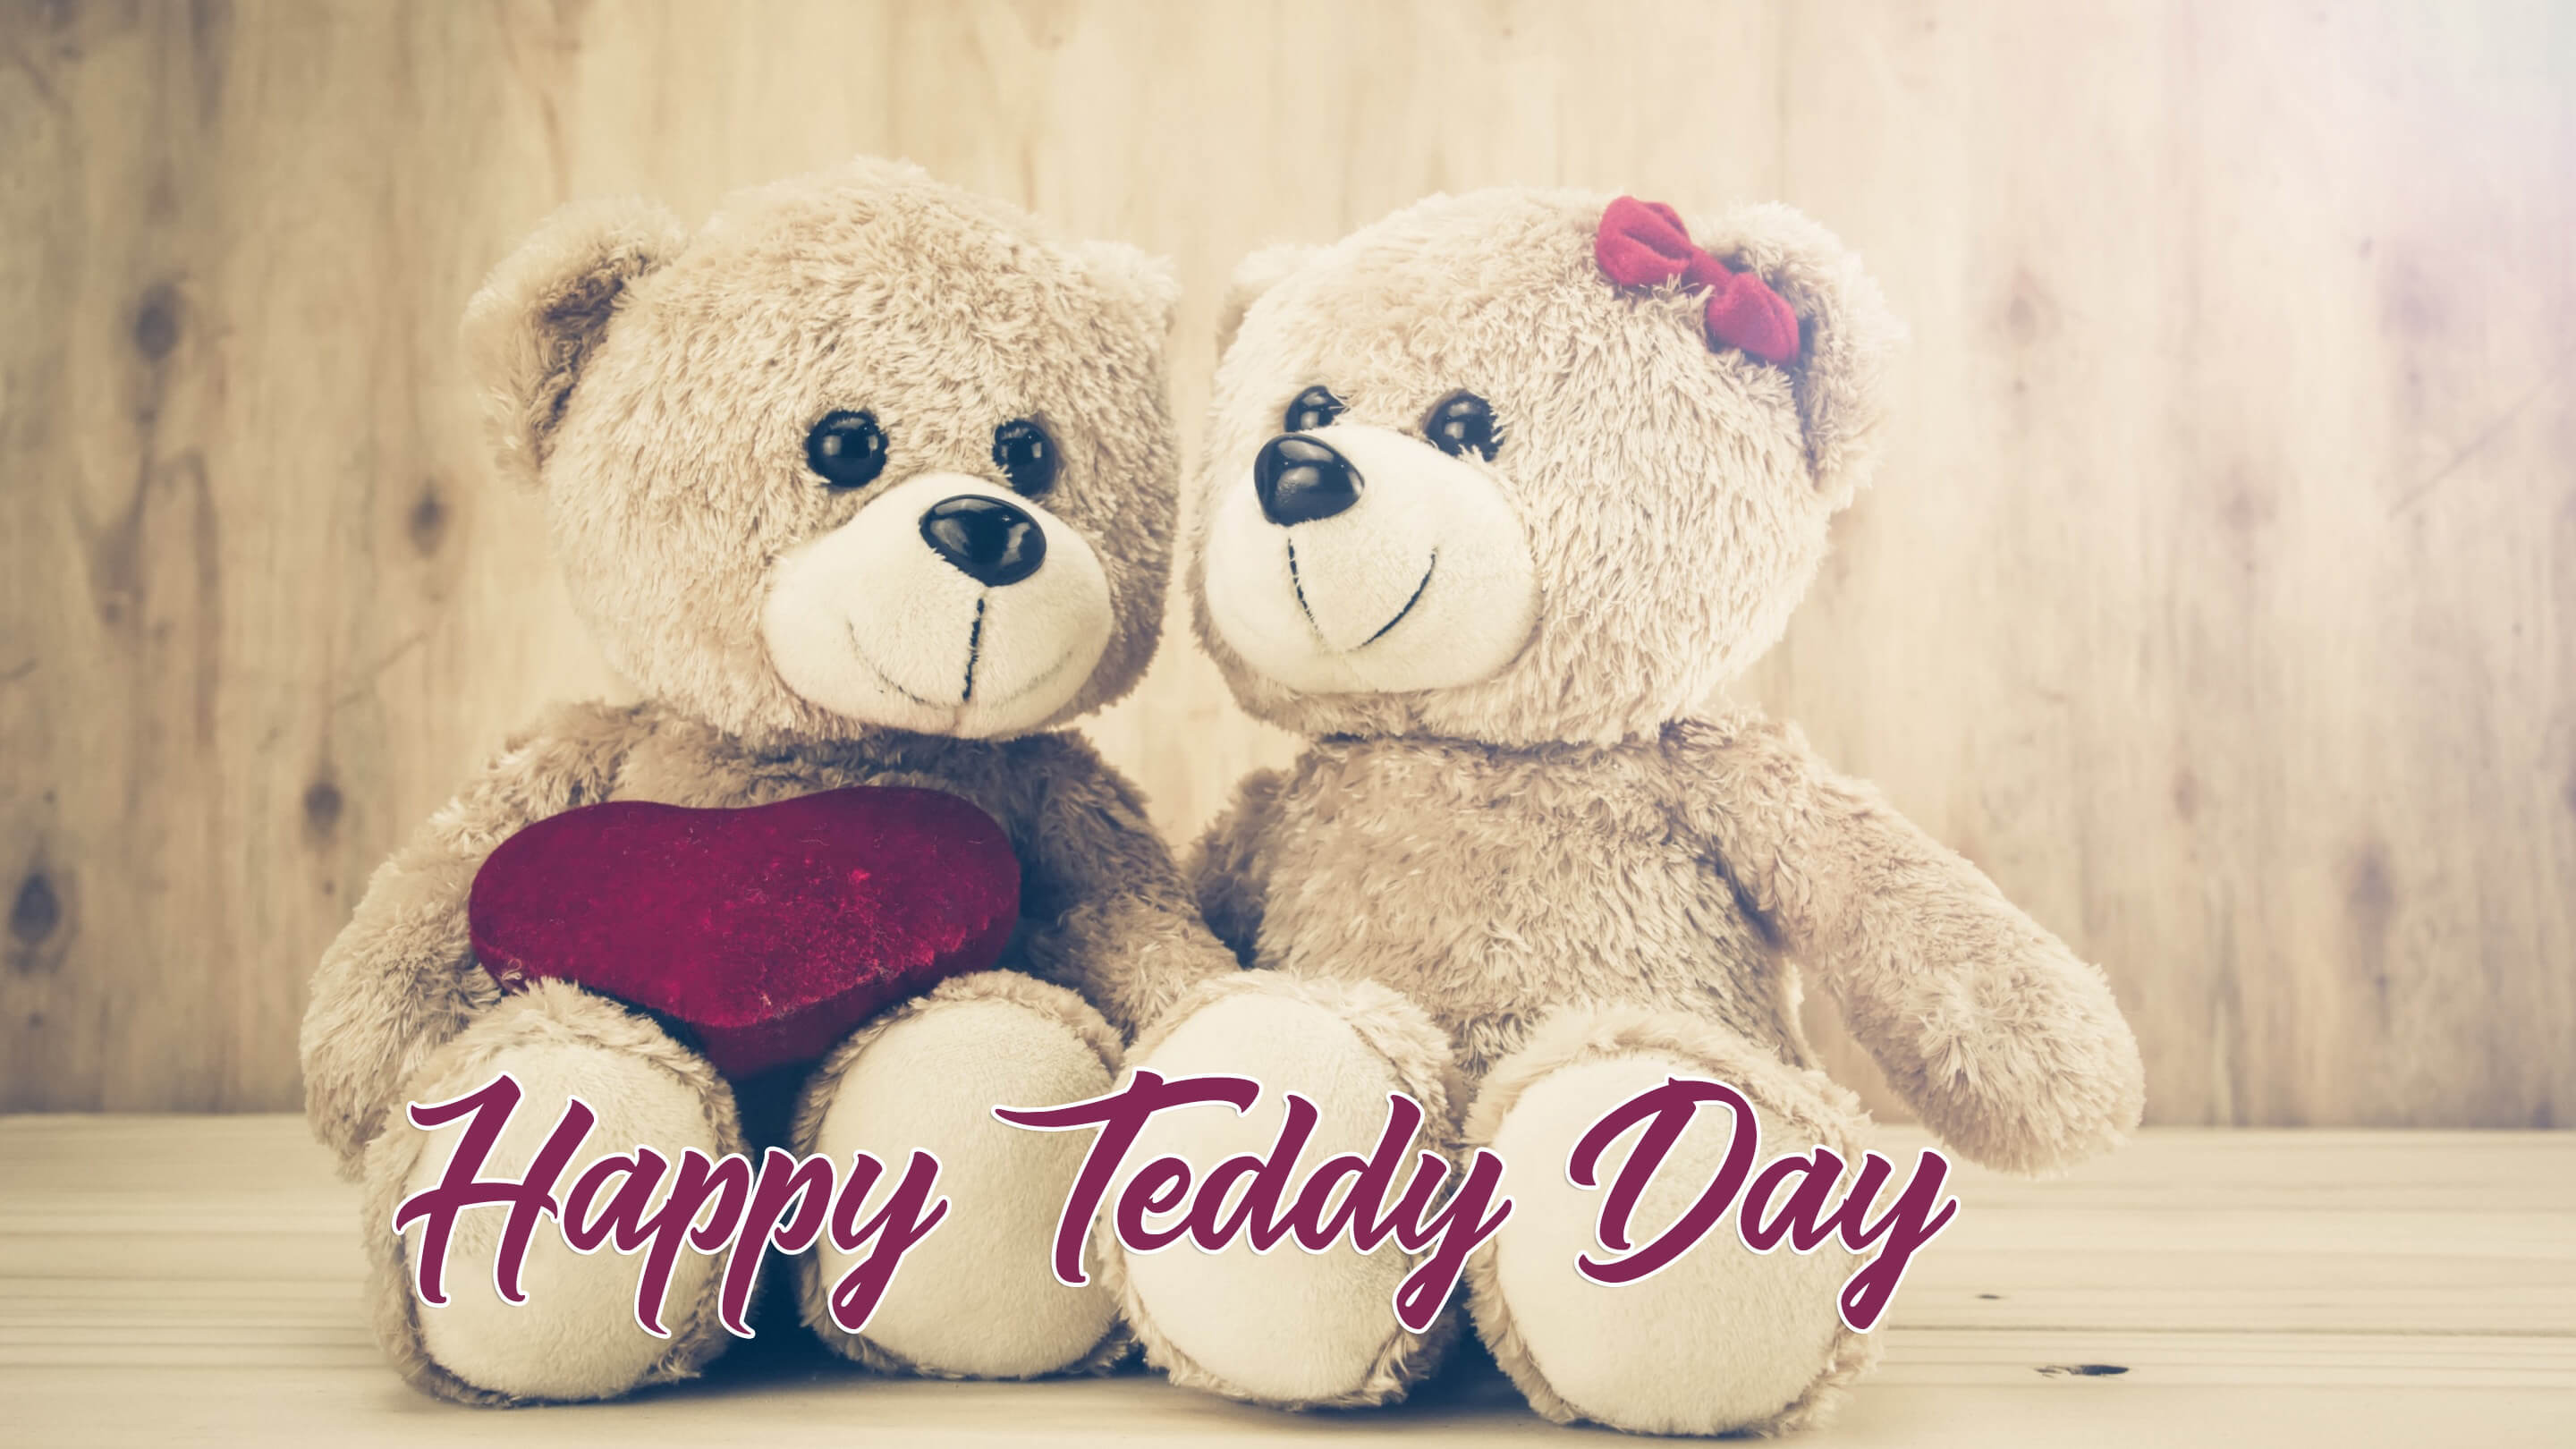 happy teddy day wishes bear couples image large background hd wallpaper